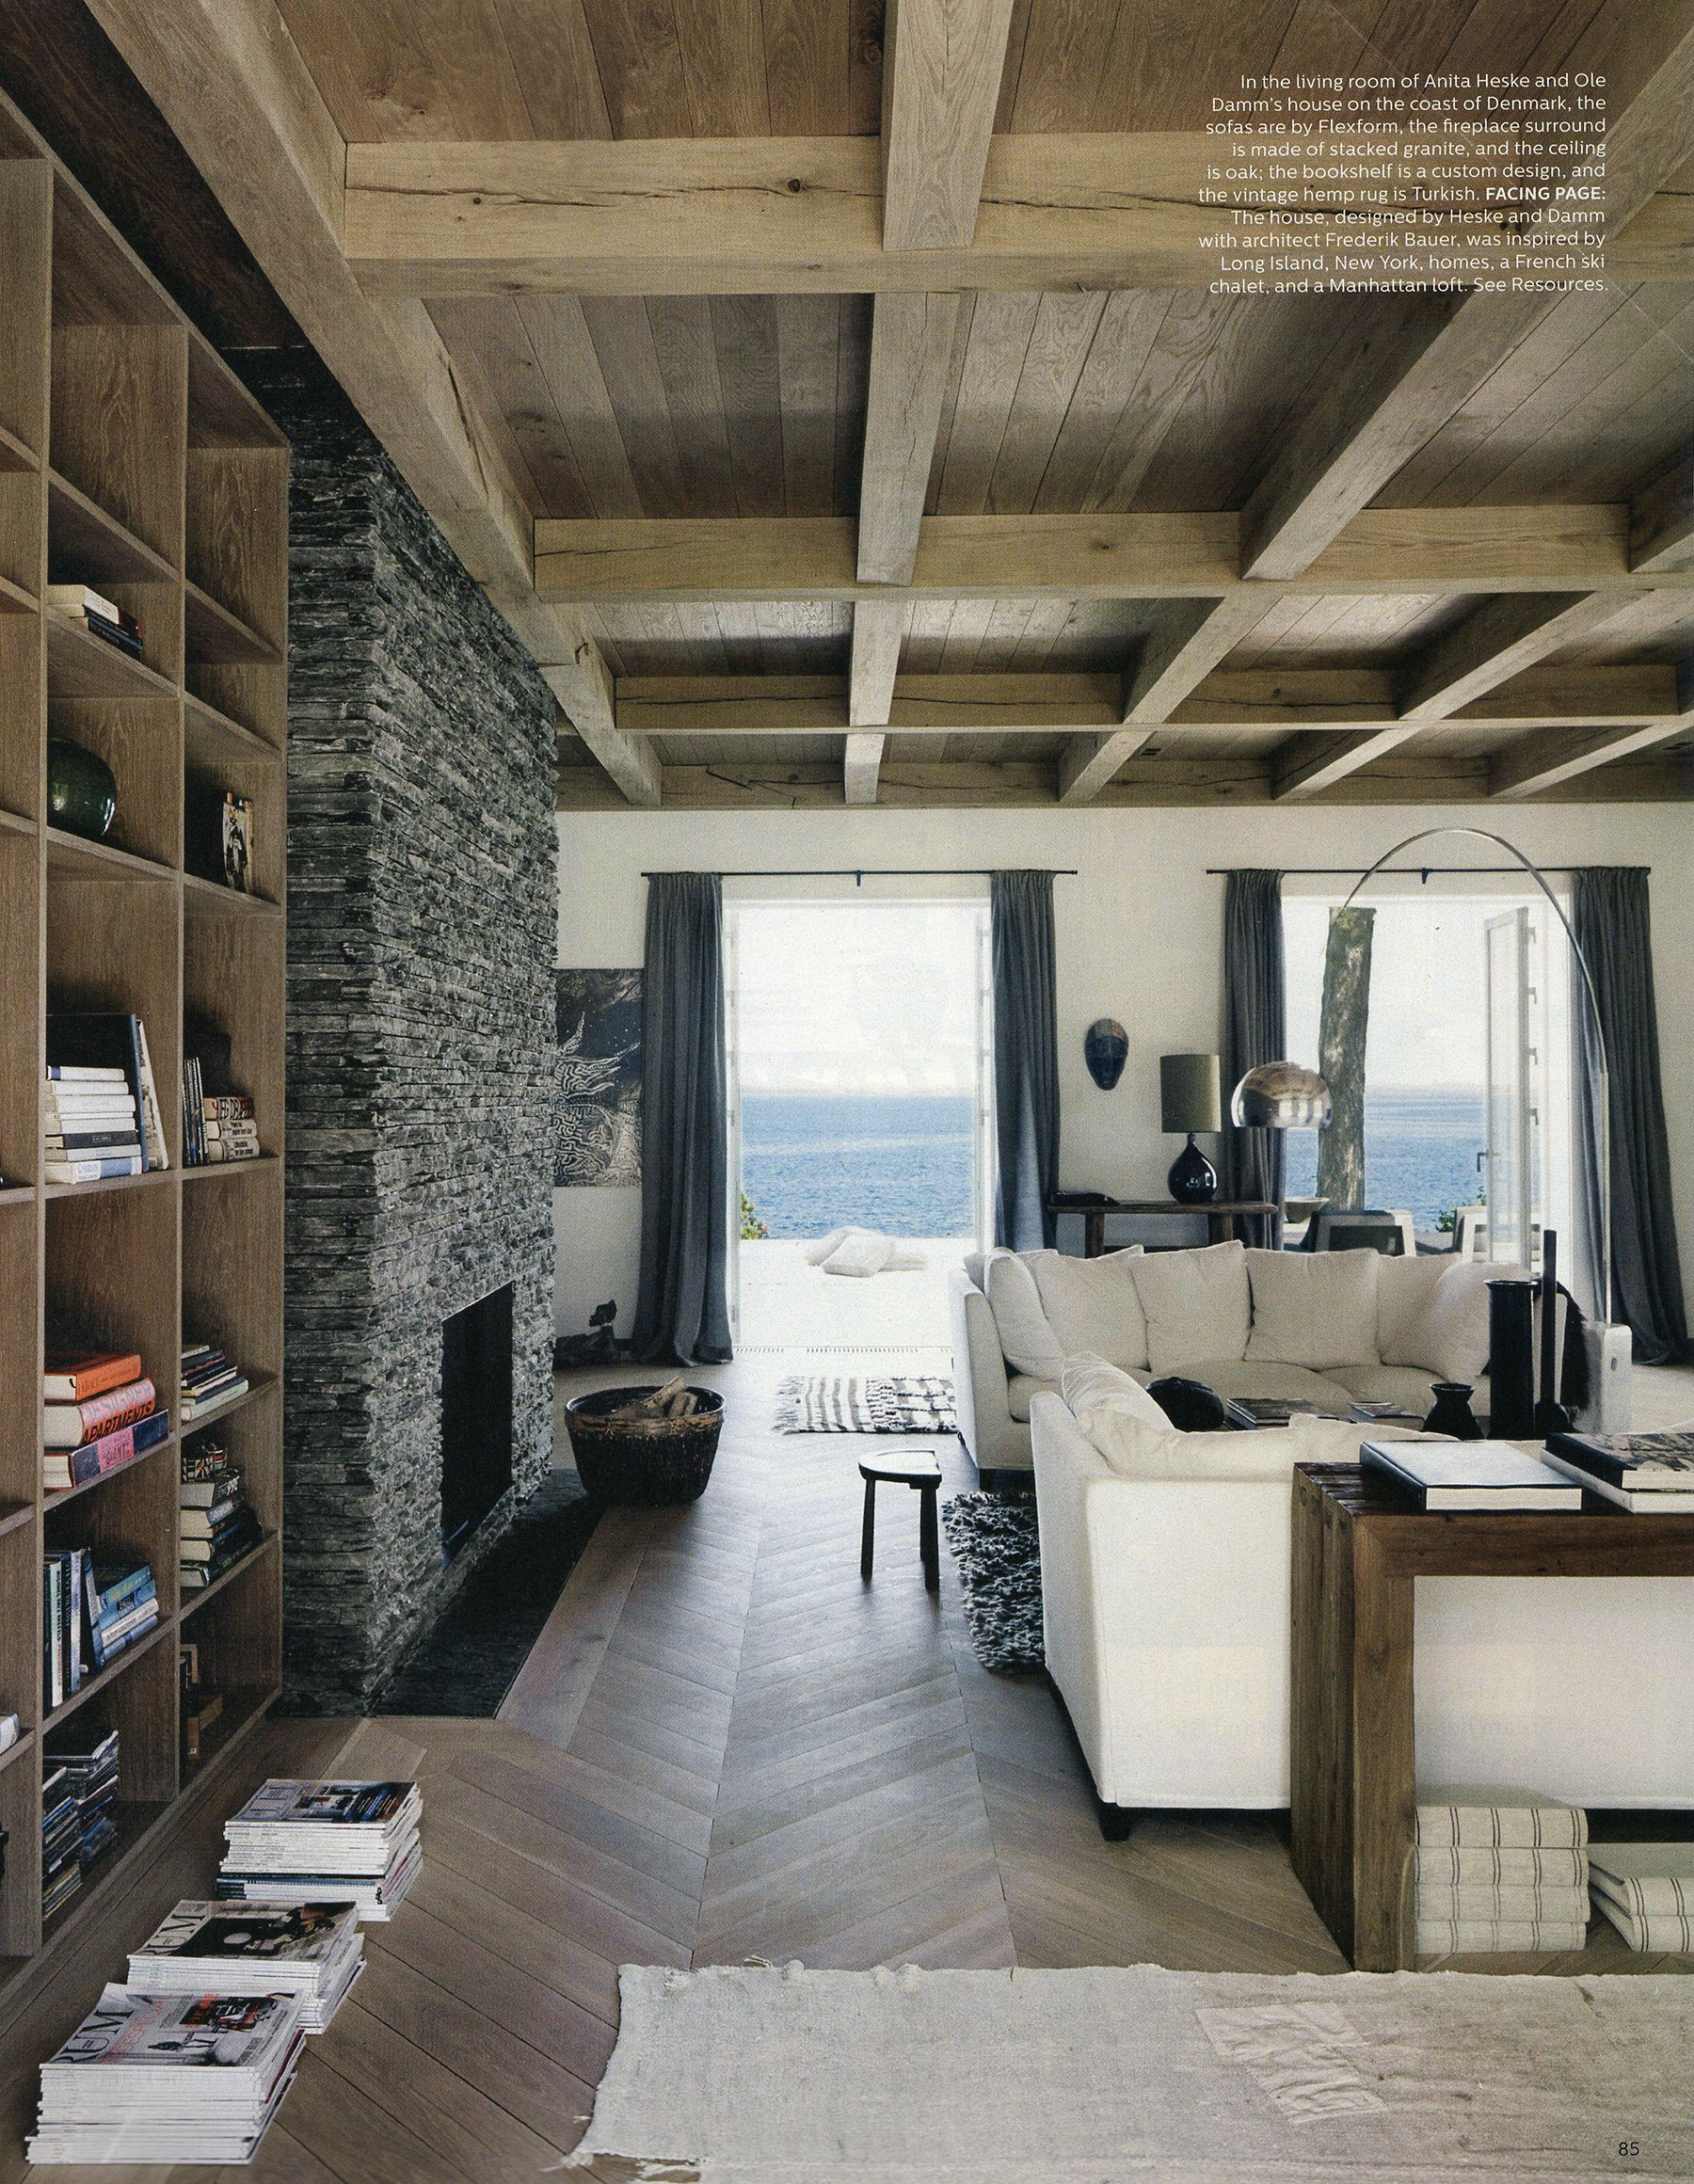 Get tips from hgtv remodels for picking a living room style you'll love for years. Related image   Coastal decorating living room, Home ...